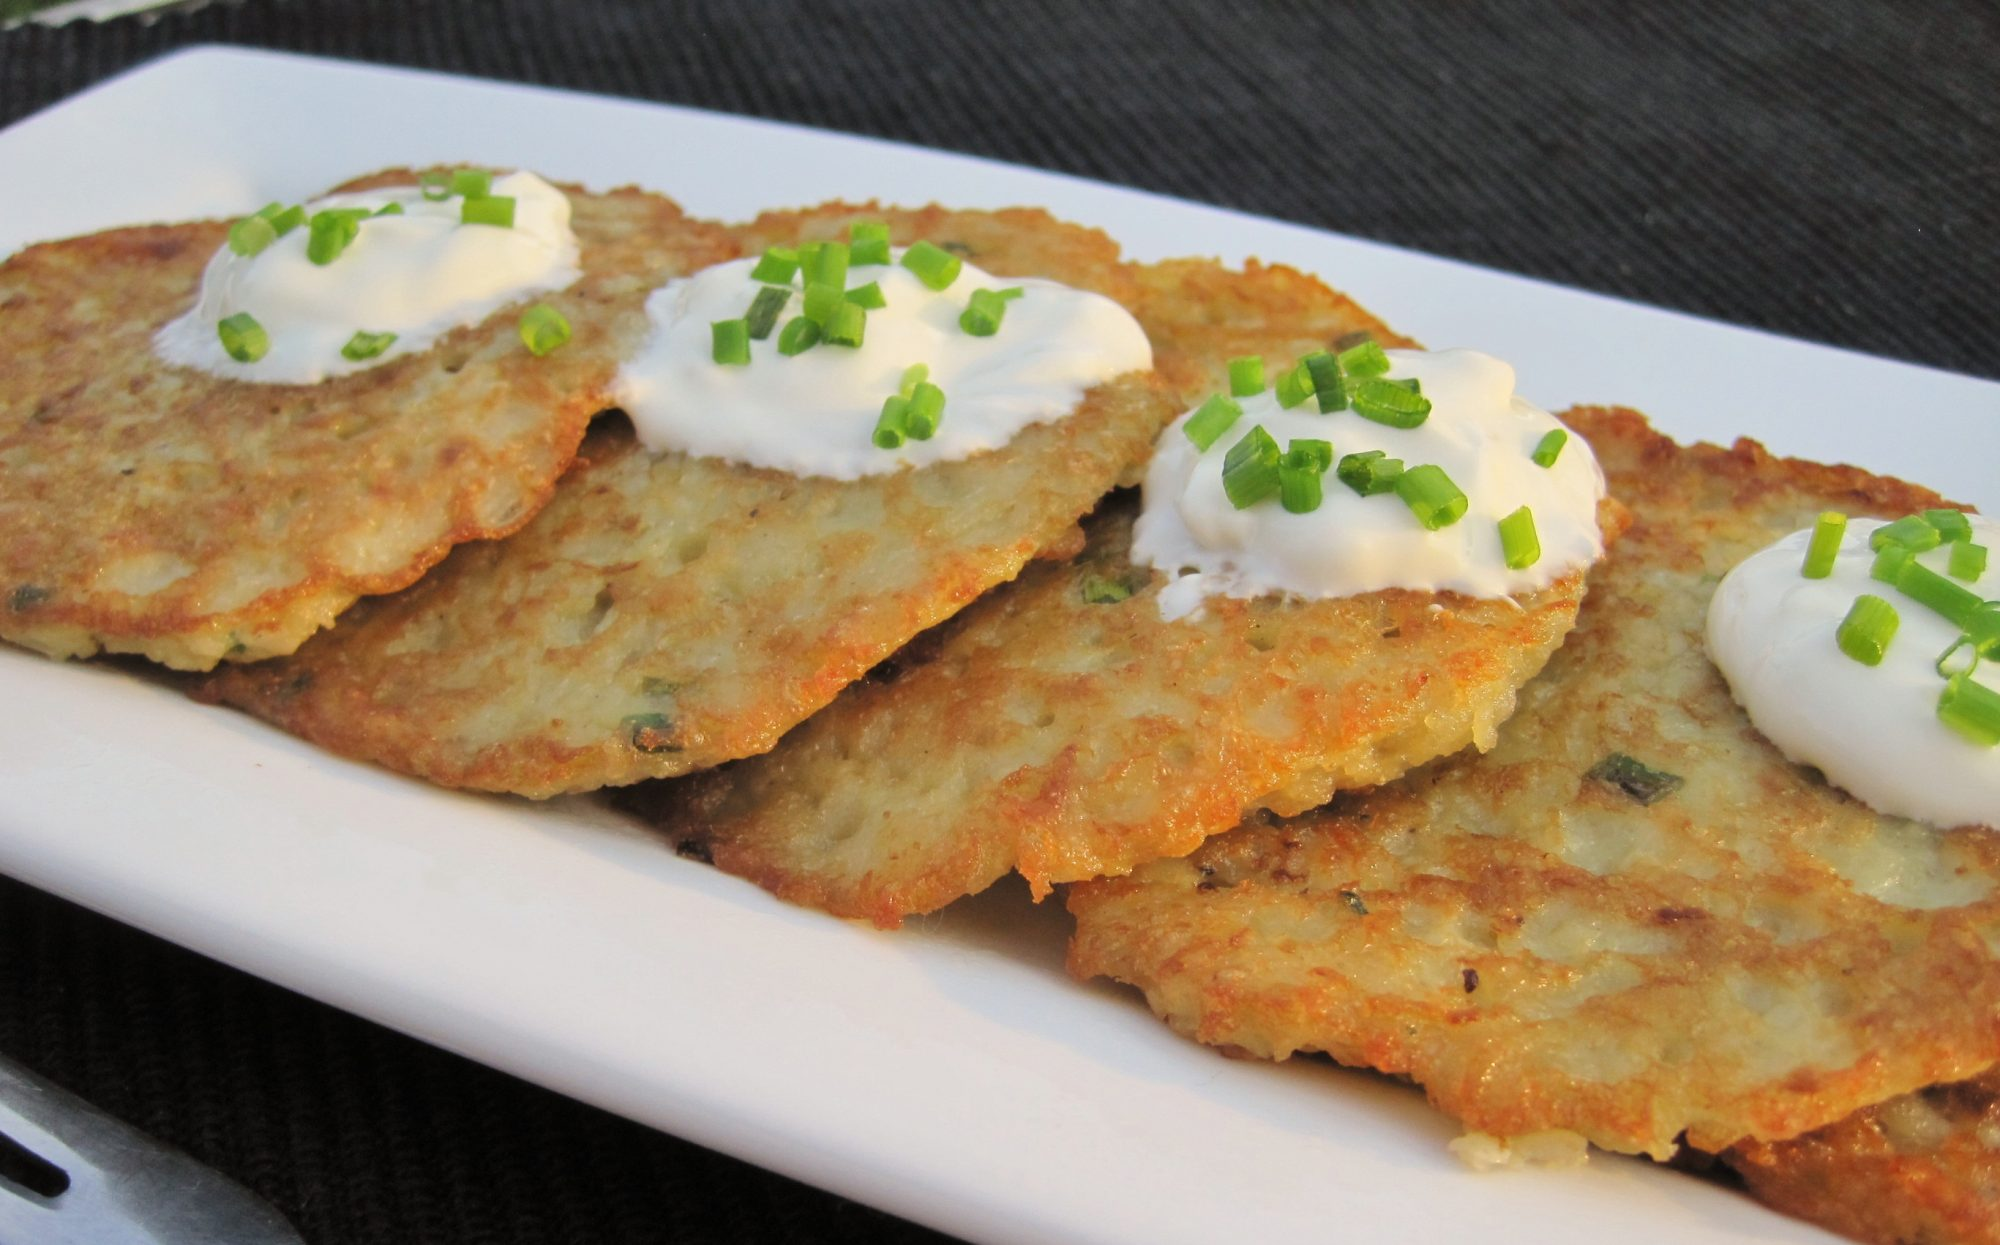 latkes topped with sour cream and chopped chives layered on a rectangular platter